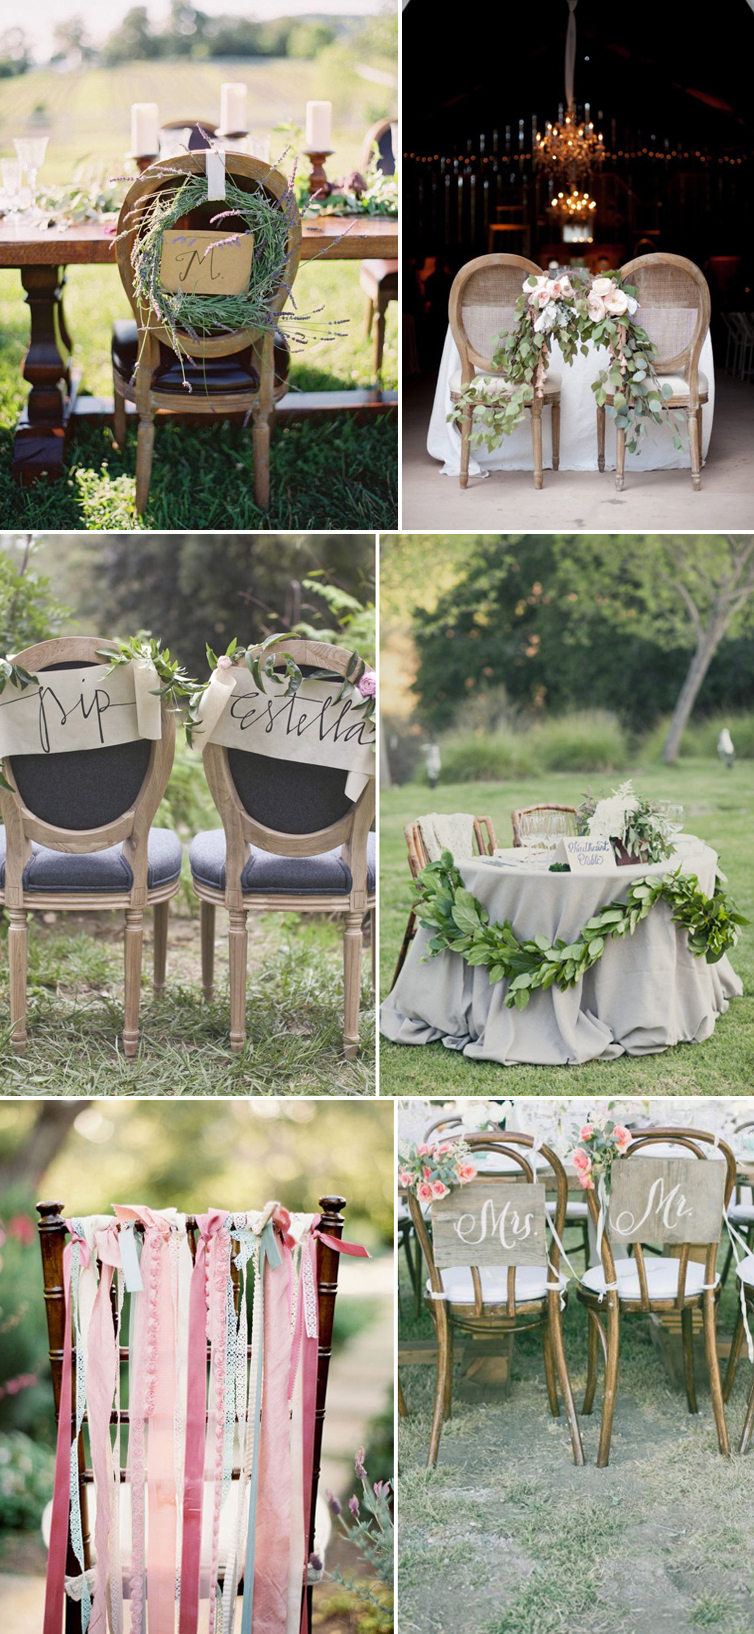 Coco Wedding Venues - Rustic Romance Wedding Style - Chair Decor.